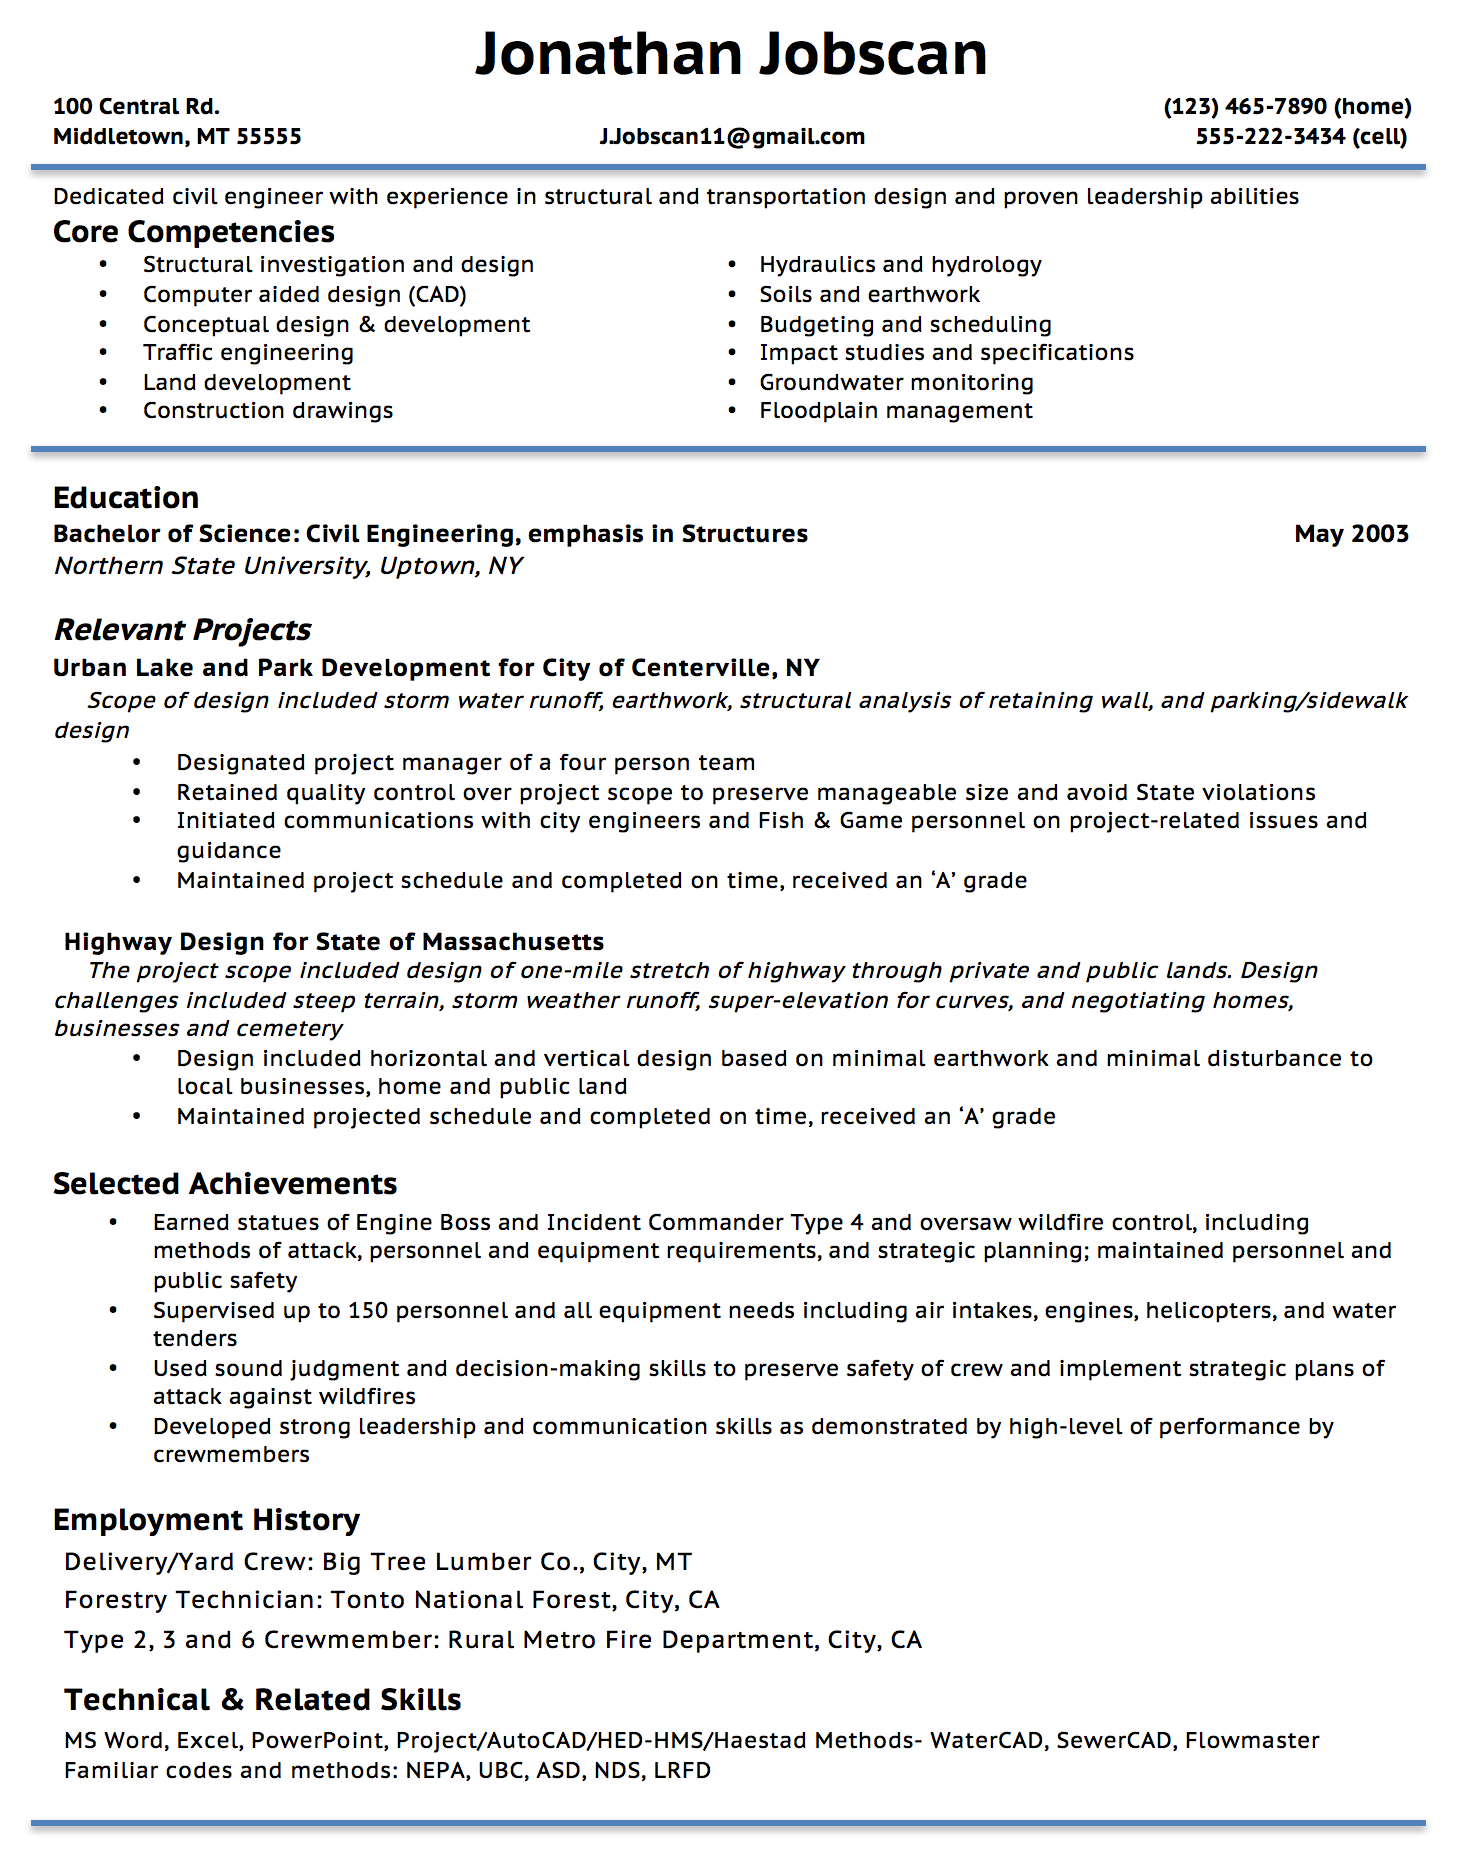 Opposenewapstandardsus  Fascinating Resume Writing Guide  Jobscan With Marvelous Example Of A Functional Resume Format With Extraordinary How To Start A Resume Also Preschool Teacher Resume In Addition Best Font For A Resume And Software Developer Resume As Well As What Should Be On A Resume Additionally Technical Resume From Jobscanco With Opposenewapstandardsus  Marvelous Resume Writing Guide  Jobscan With Extraordinary Example Of A Functional Resume Format And Fascinating How To Start A Resume Also Preschool Teacher Resume In Addition Best Font For A Resume From Jobscanco